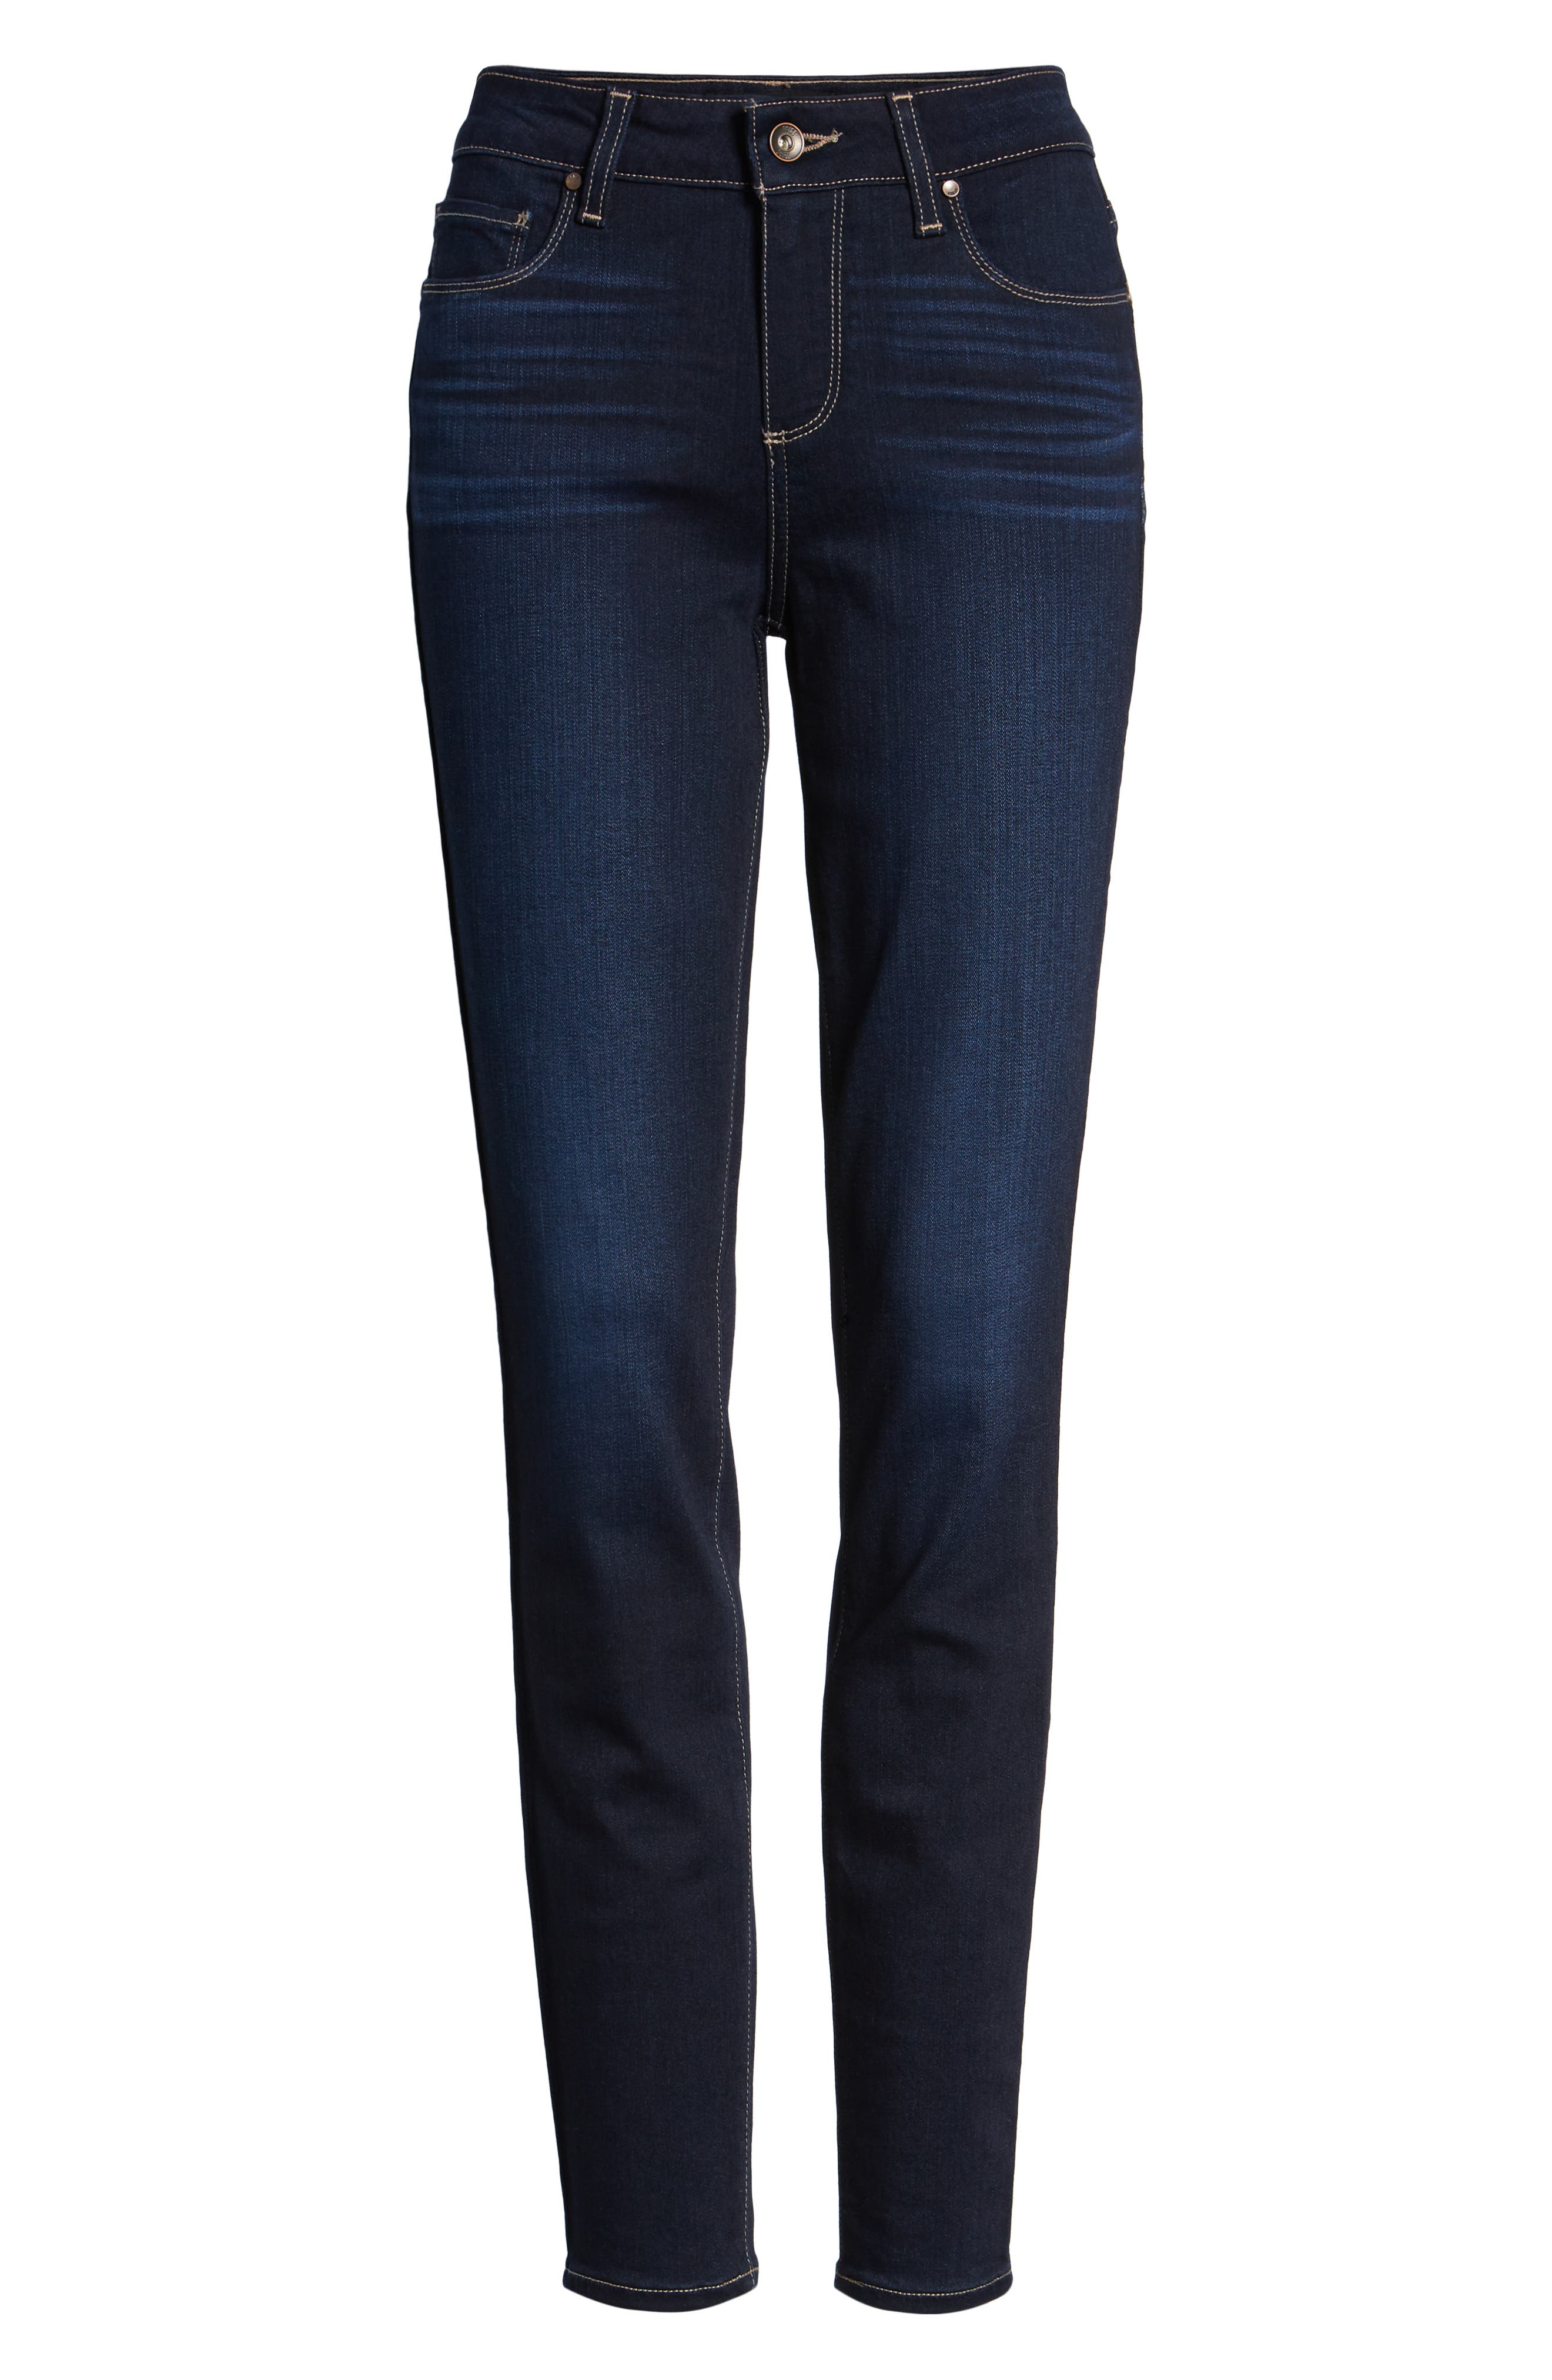 PAIGE,                             Transcend - Verdugo Ultra Skinny Jeans,                             Alternate thumbnail 6, color,                             ACADIA